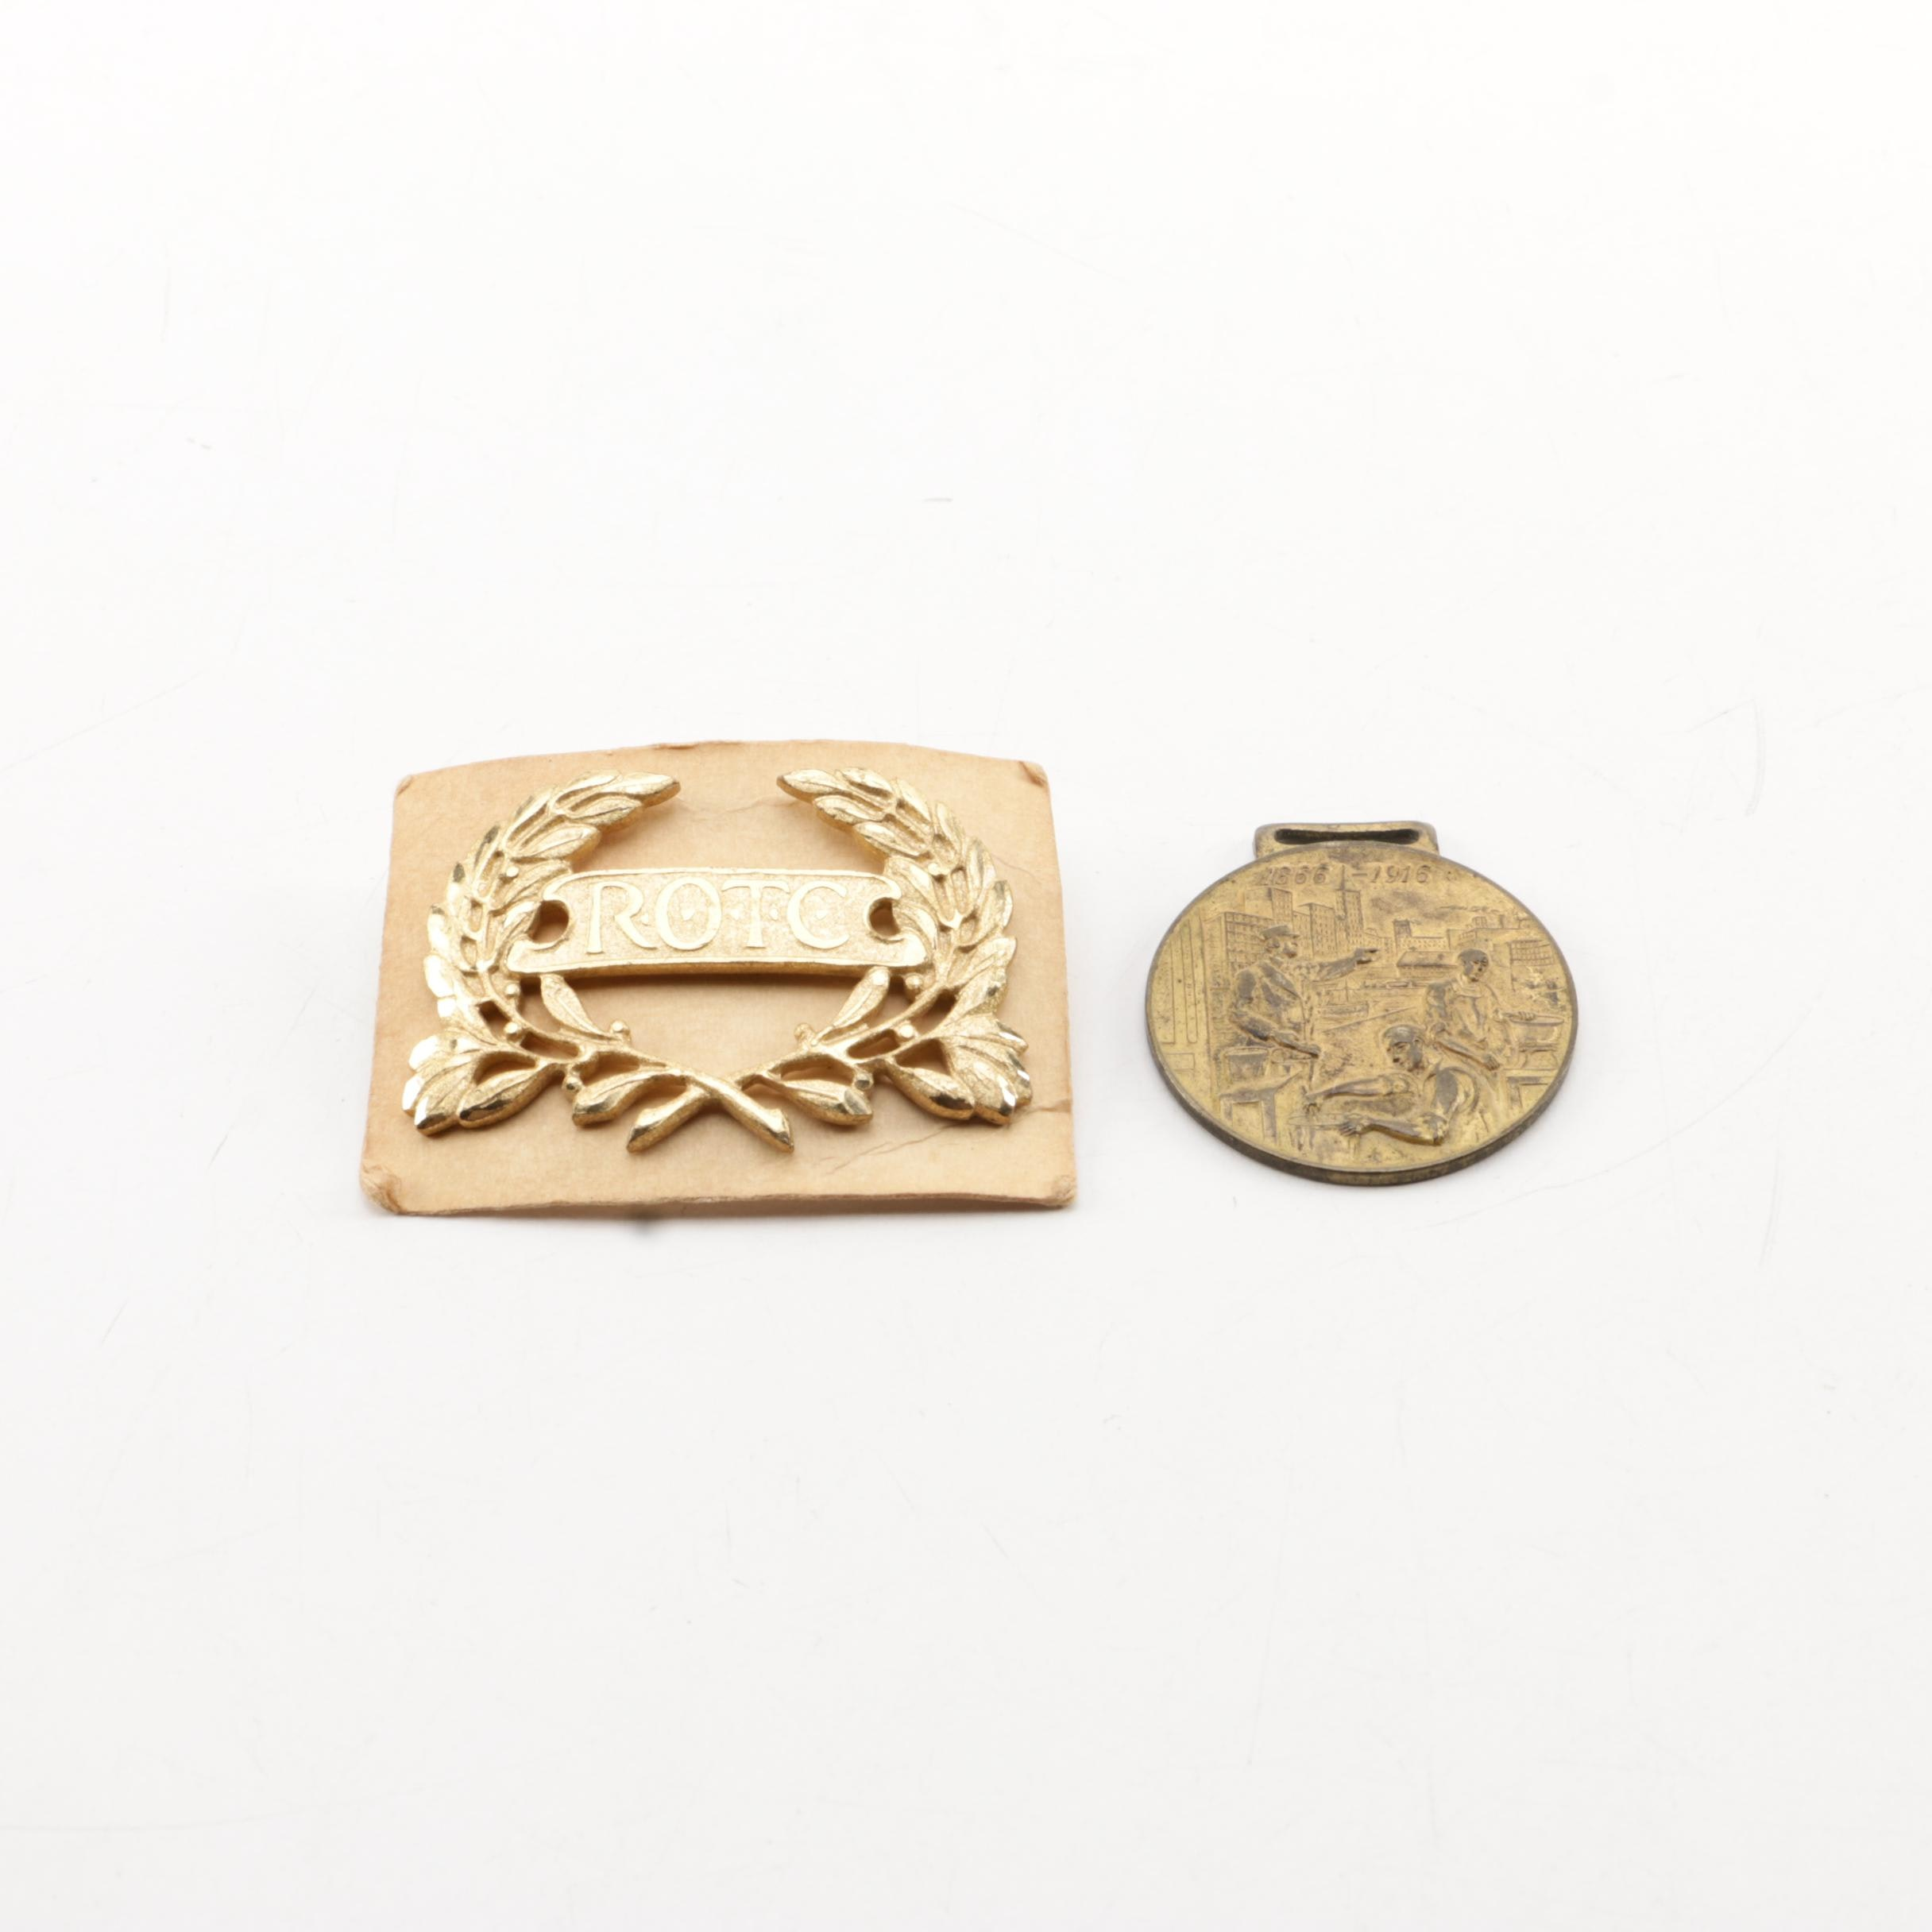 ROTC Pin and 1916 Sherwin-Williams Golden Jubilee Convention Badge